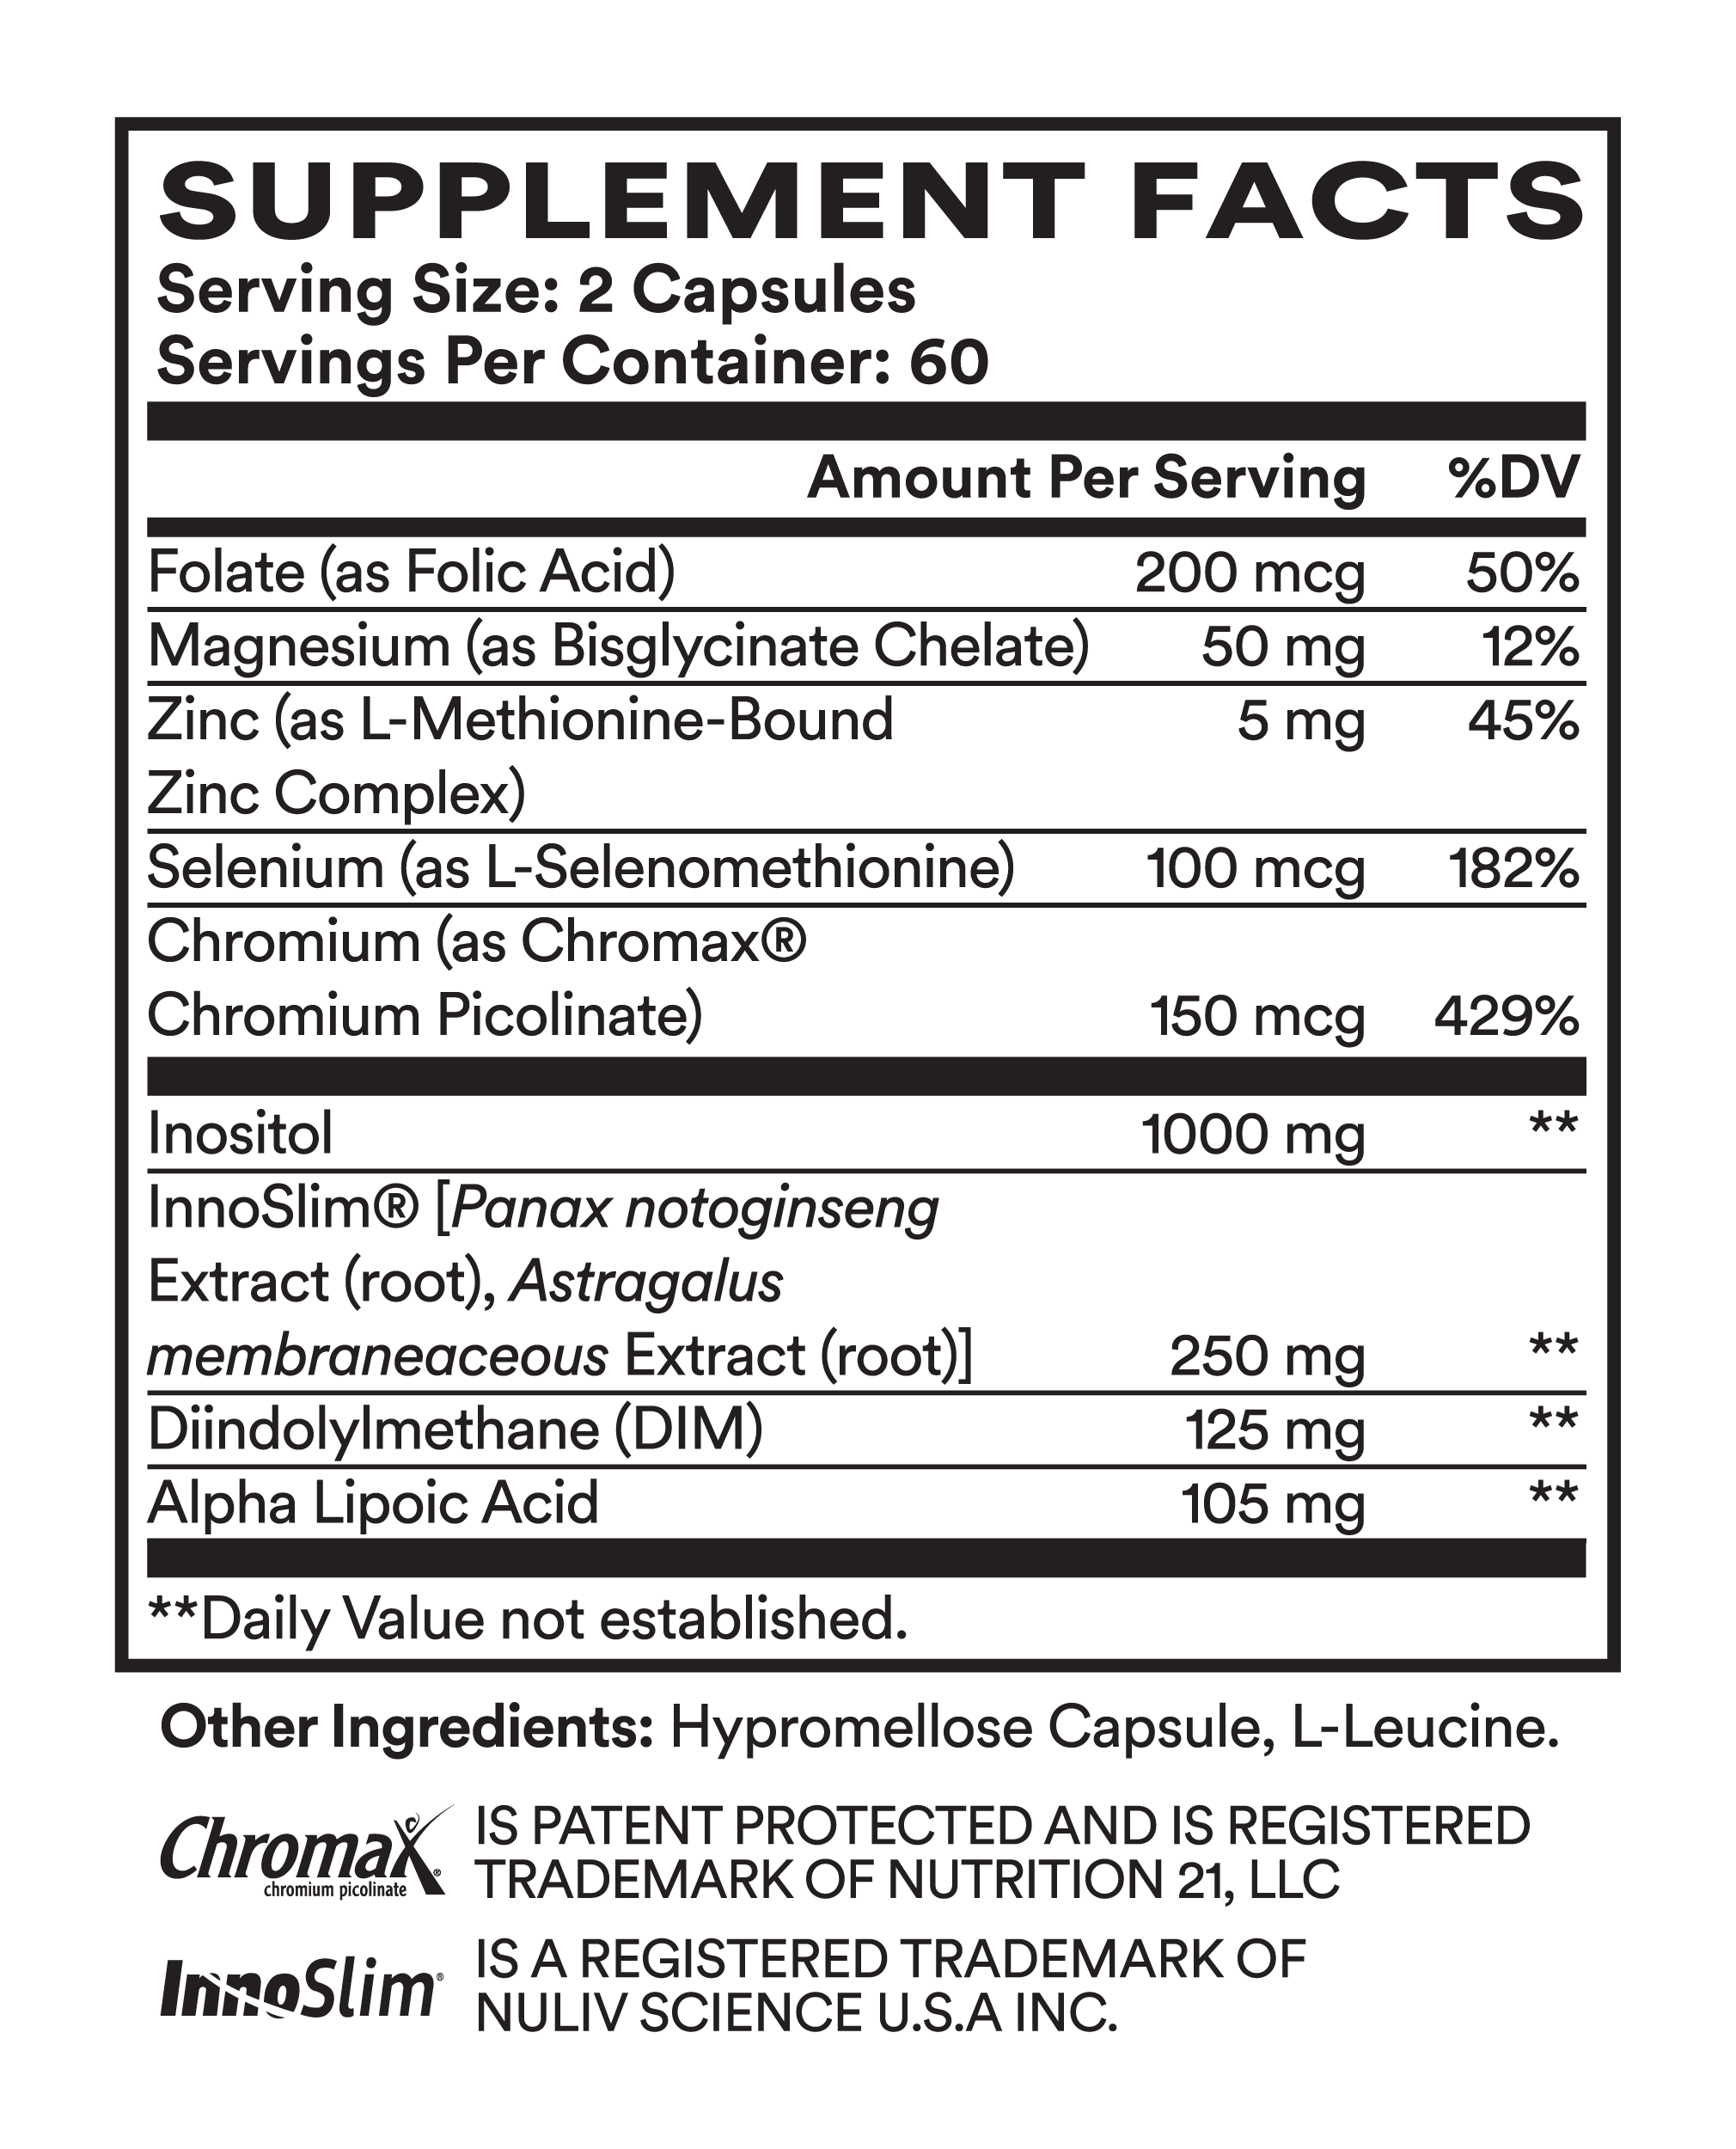 Supplement Facts for Cira Symmetry